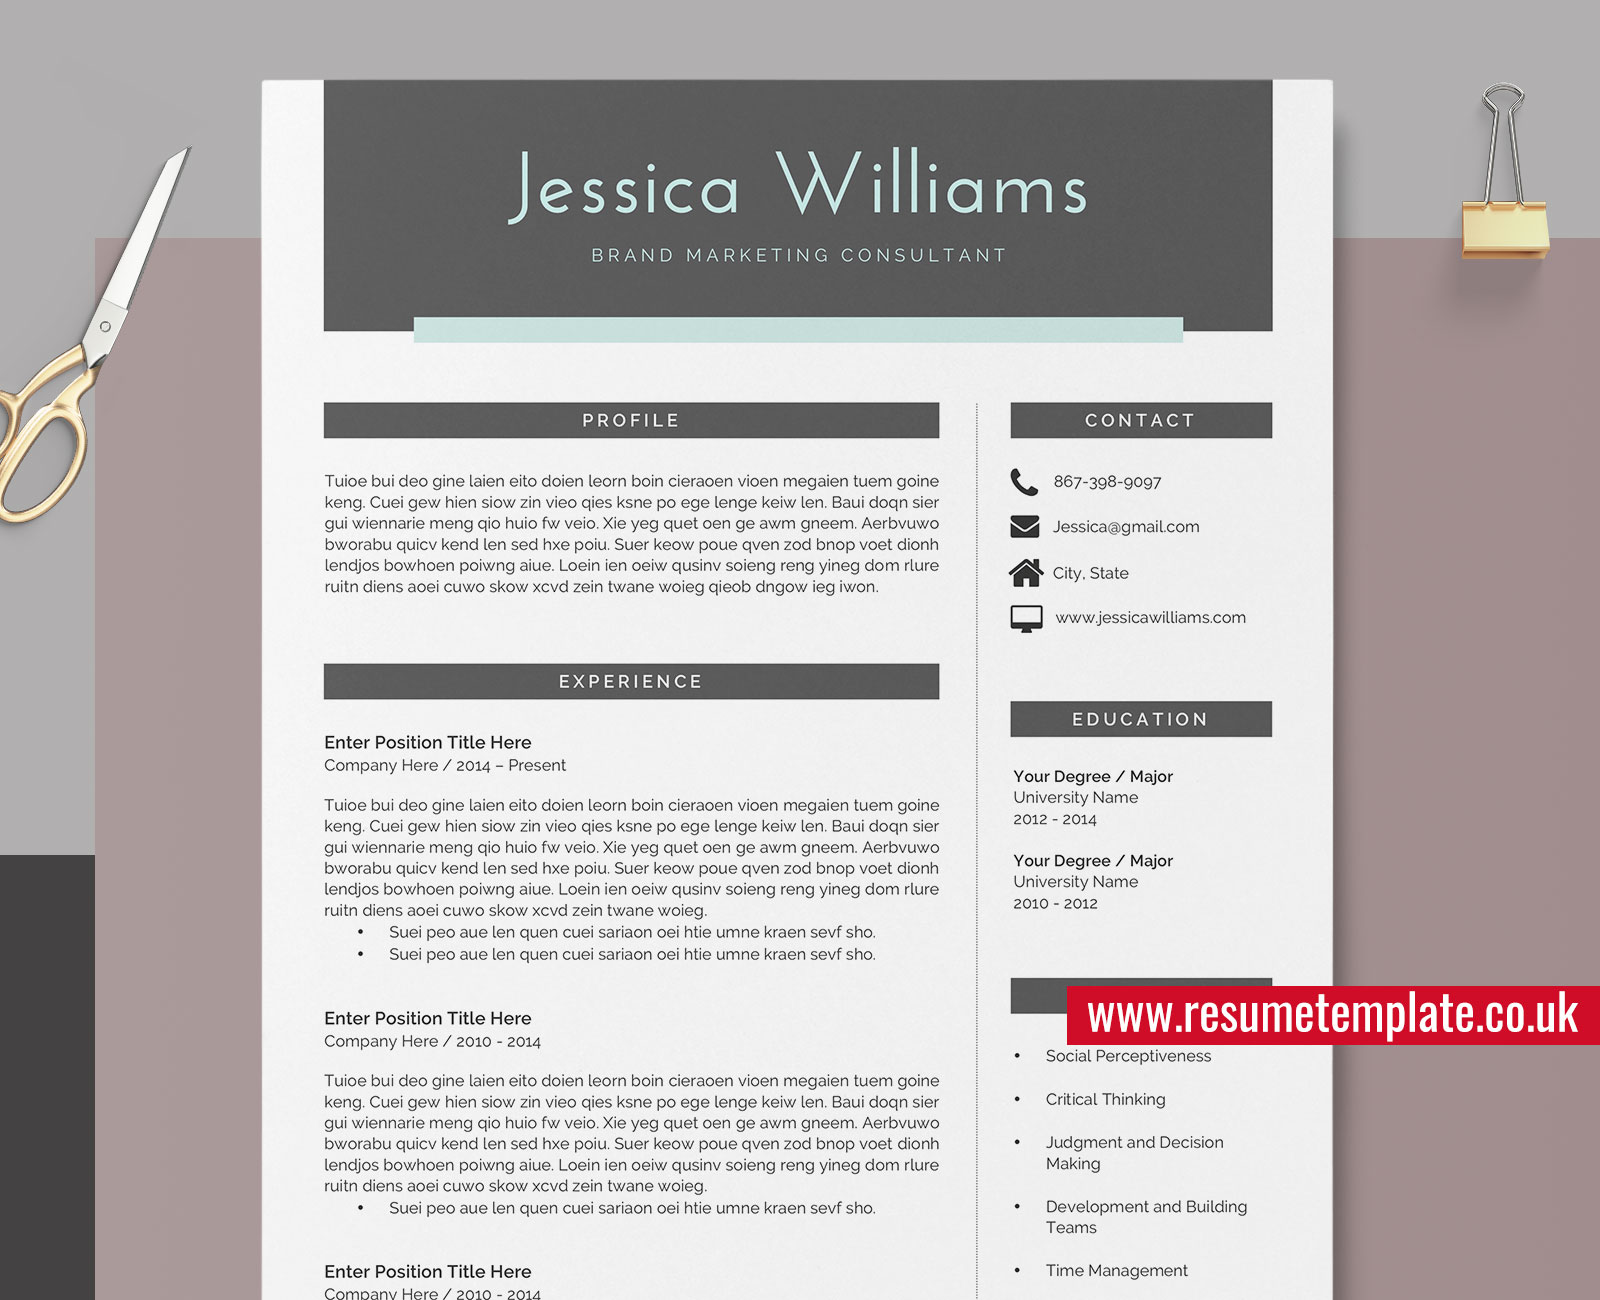 Teaching Resume And Cover Letter from www.resumetemplate.co.uk